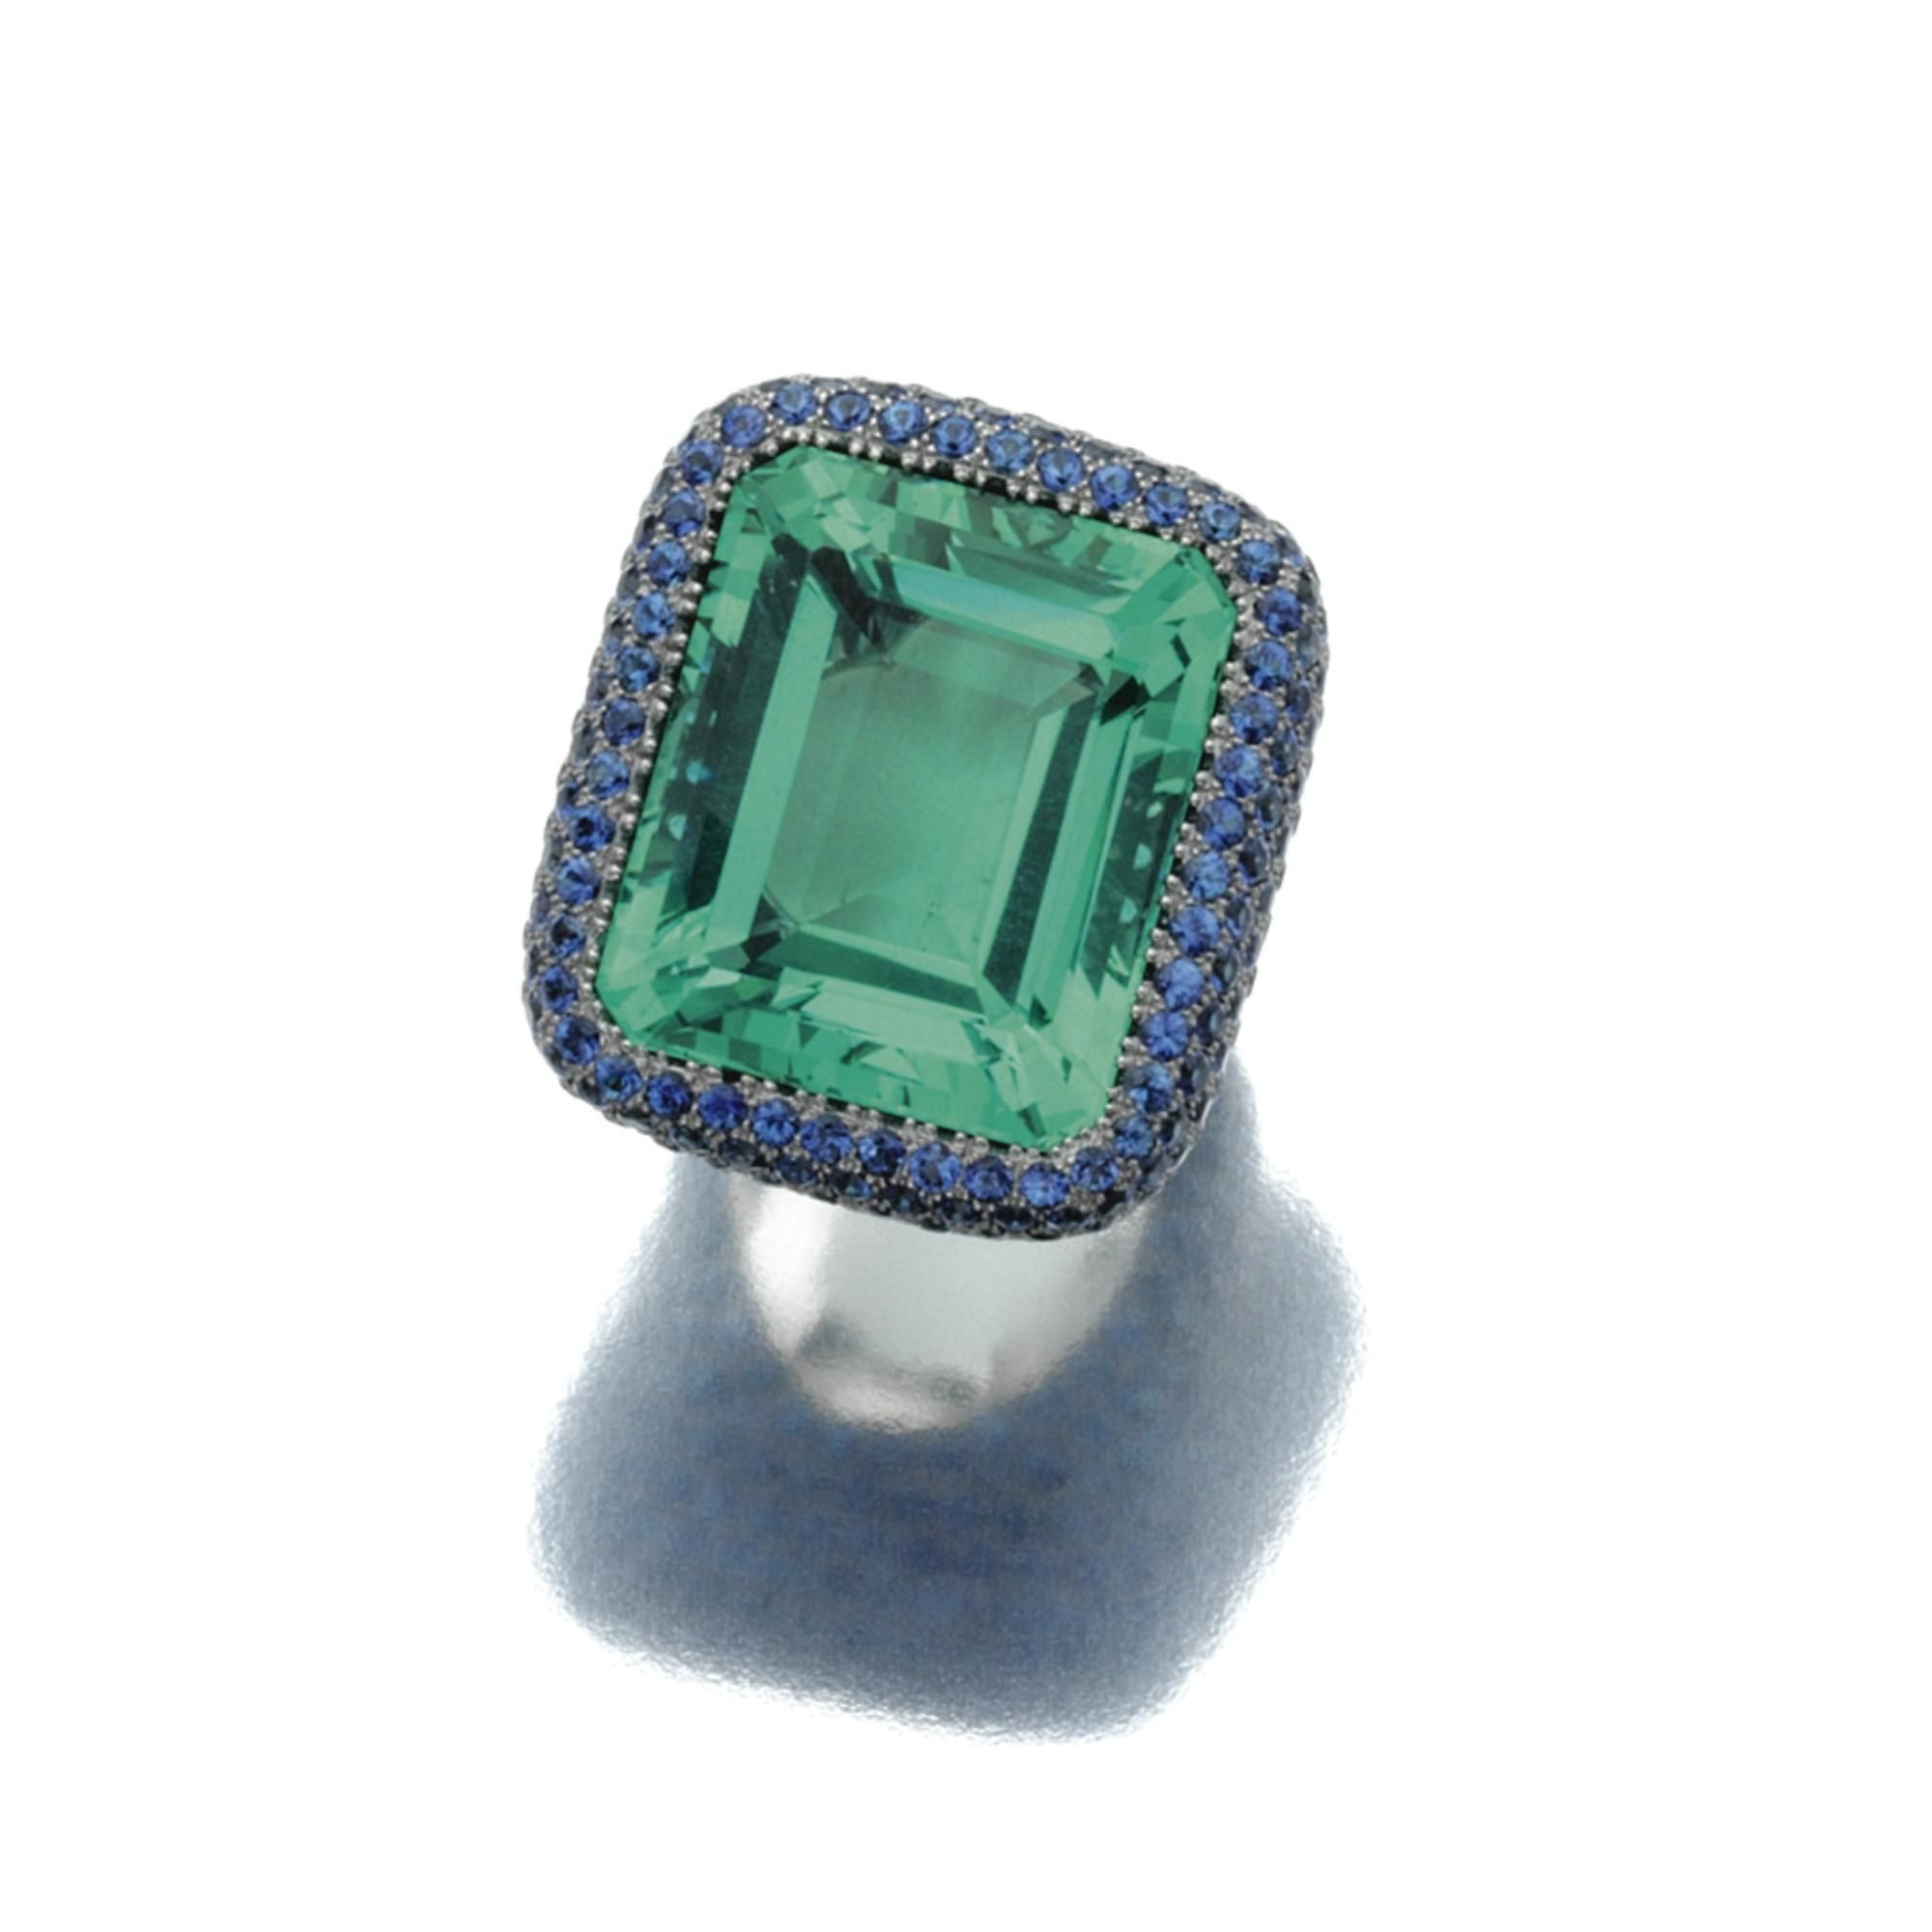 rings brand big silver green fluorite diamond for apatite pin jewelry tourmaline sterling engagemet women hutang